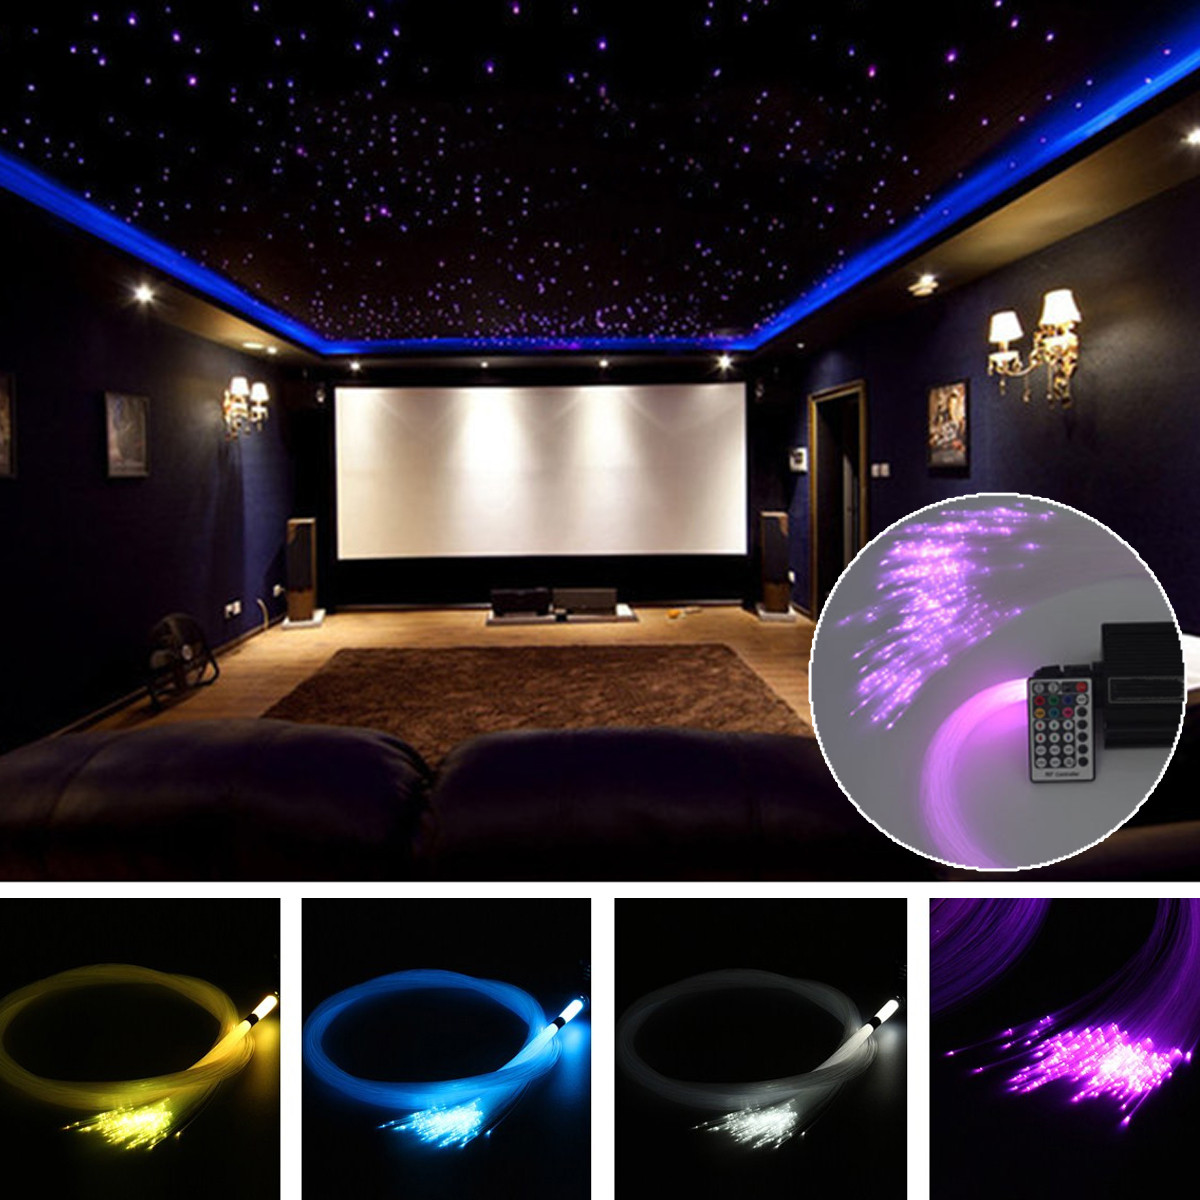 150Pcs 0.75mm x 2m RGB Fiber Optic Lights DIY LED Strips Star Ceiling Light Decoration Kit For Fiber Optic Light Machine budi basa мягкая игрушка budi basa малыш саня пятаков